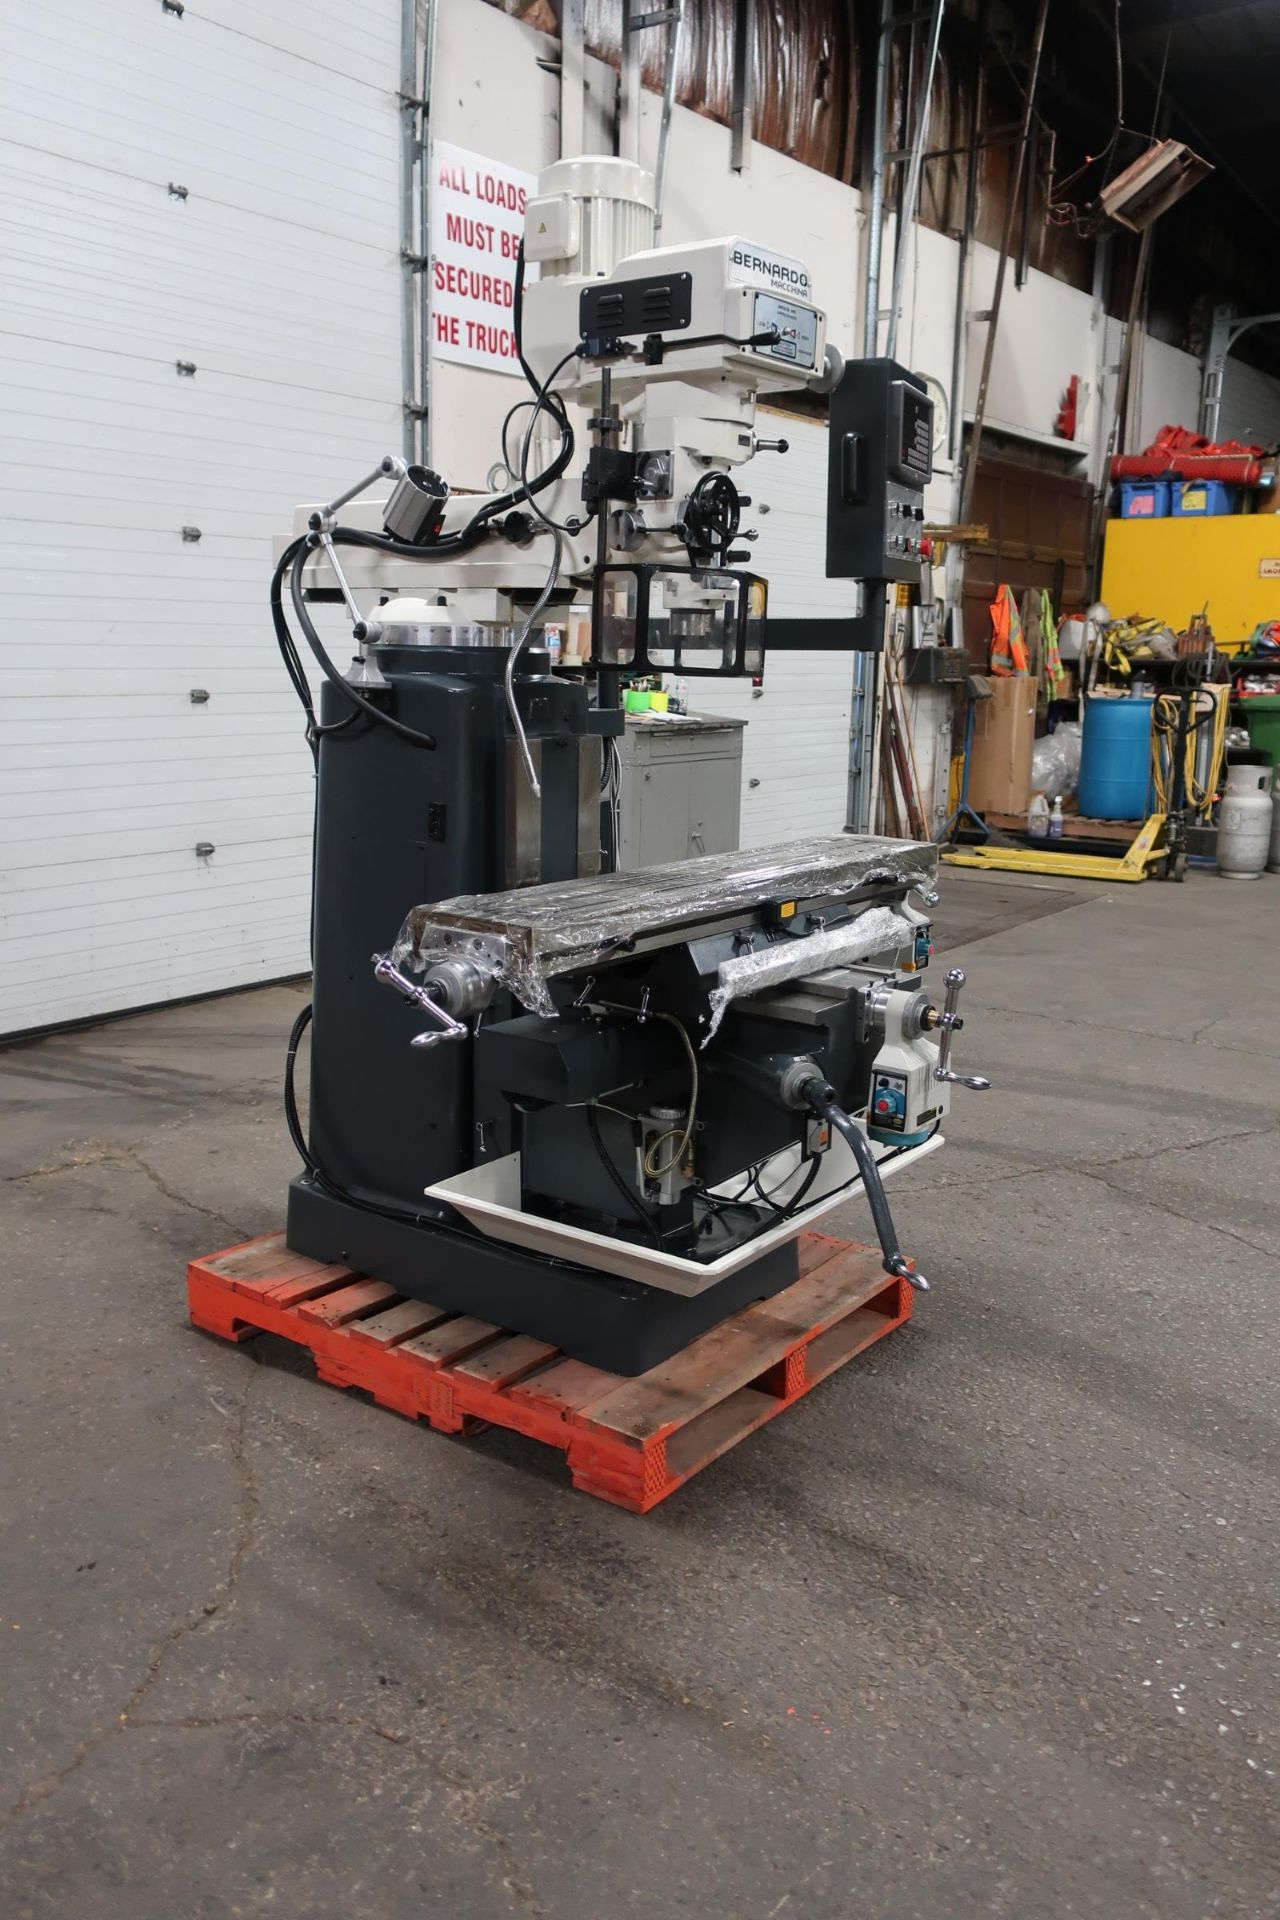 Bernardo MINT / UNUSED Milling Machine with Full Power Feed Table on ALL AXIS (X, Y and Z) with - Image 3 of 3